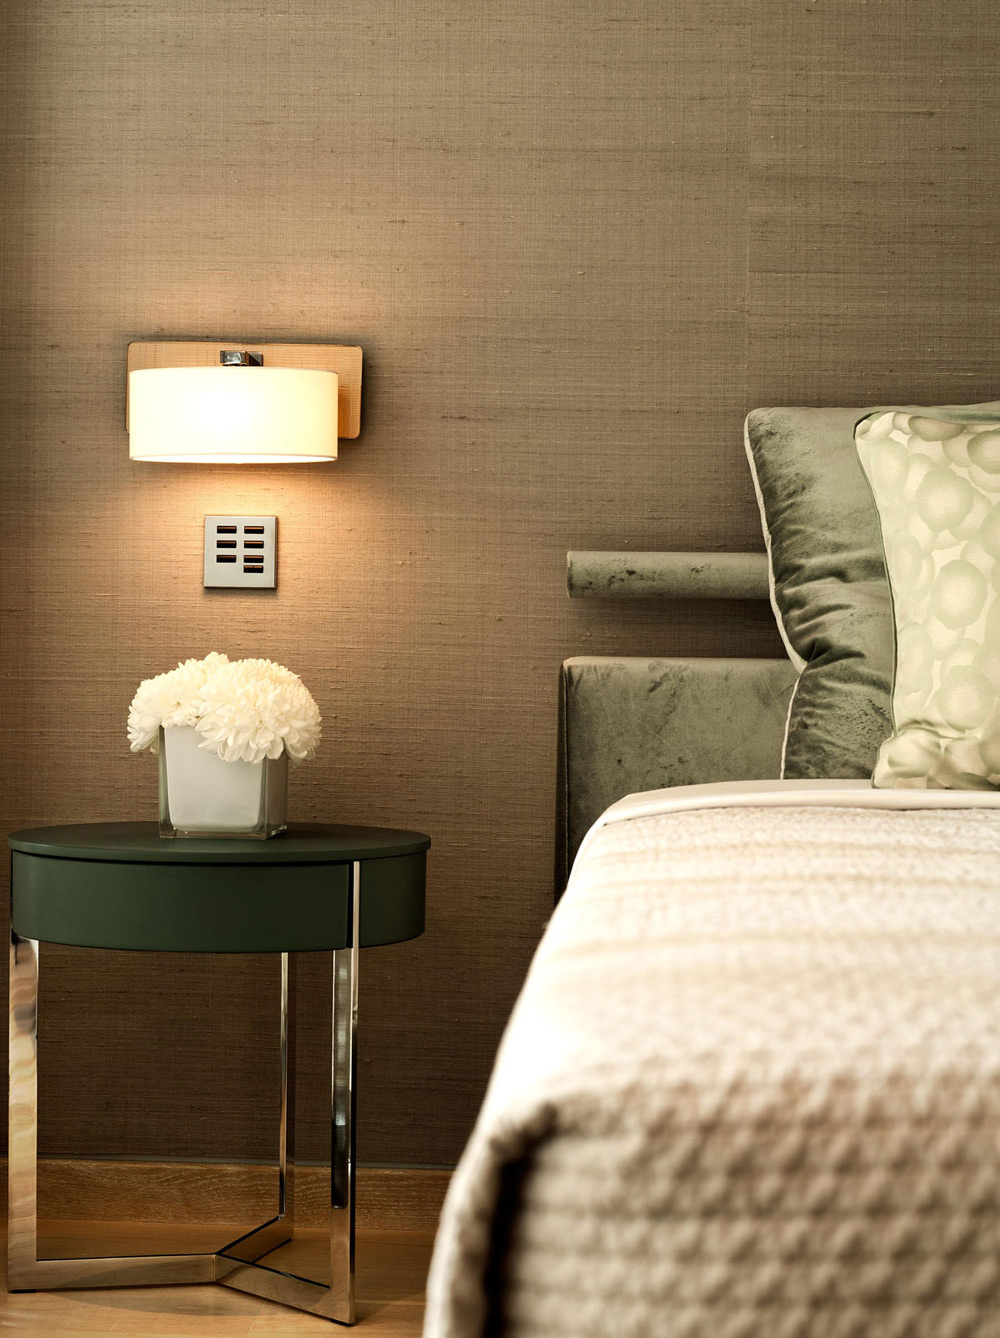 Side Table, Lighting, Bedroom, Family Home in Portugal